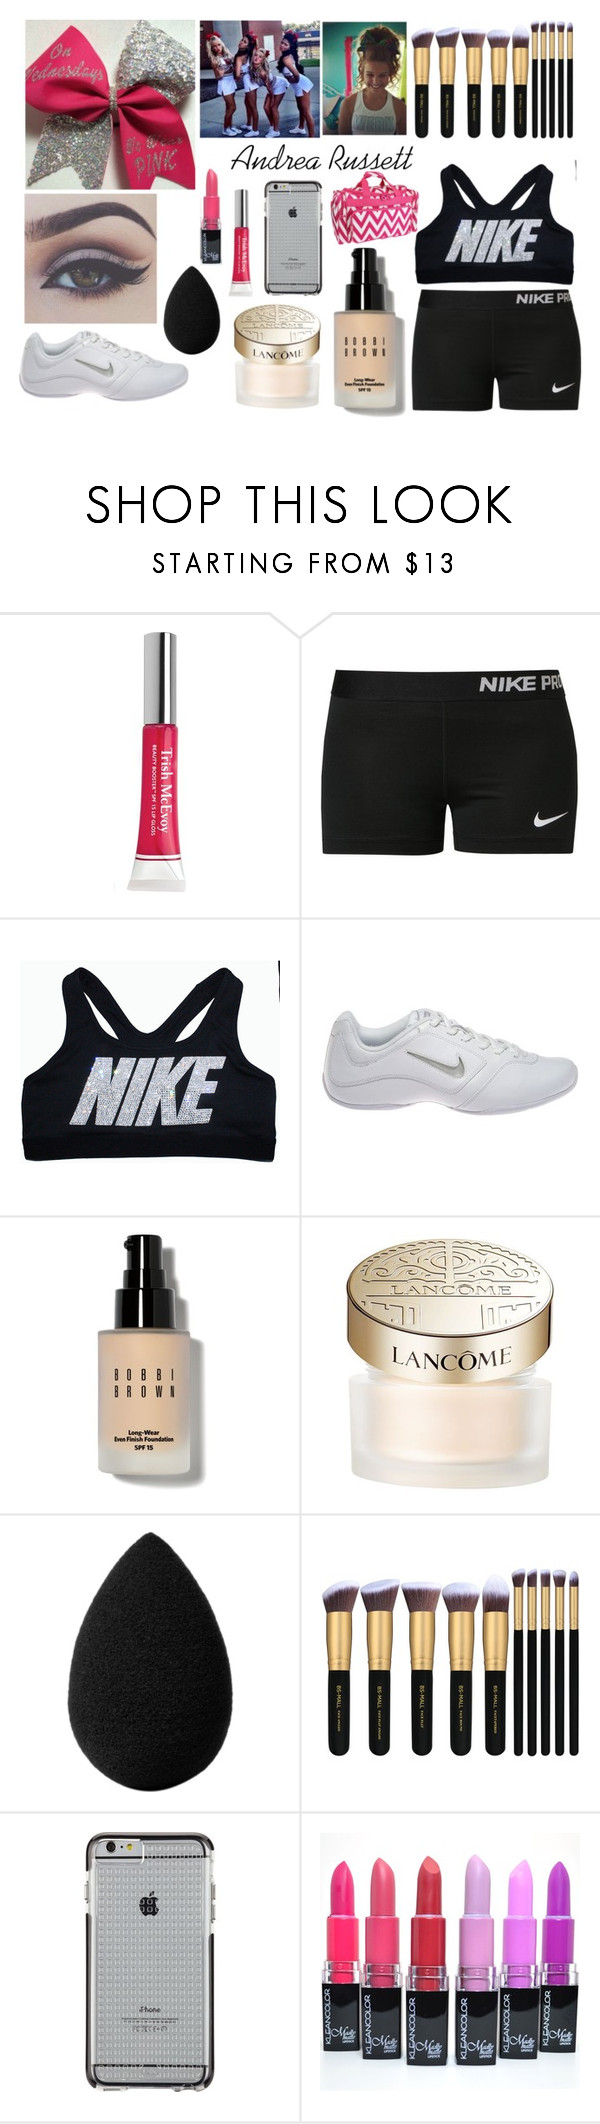 Andrea Russett by haleyjackson13 on Polyvore featuring beauty, Lancôme, Bobbi Brown Cosmetics, beautyblender, Trish McEvoy, Case-Mate, NIKE and Bellezza